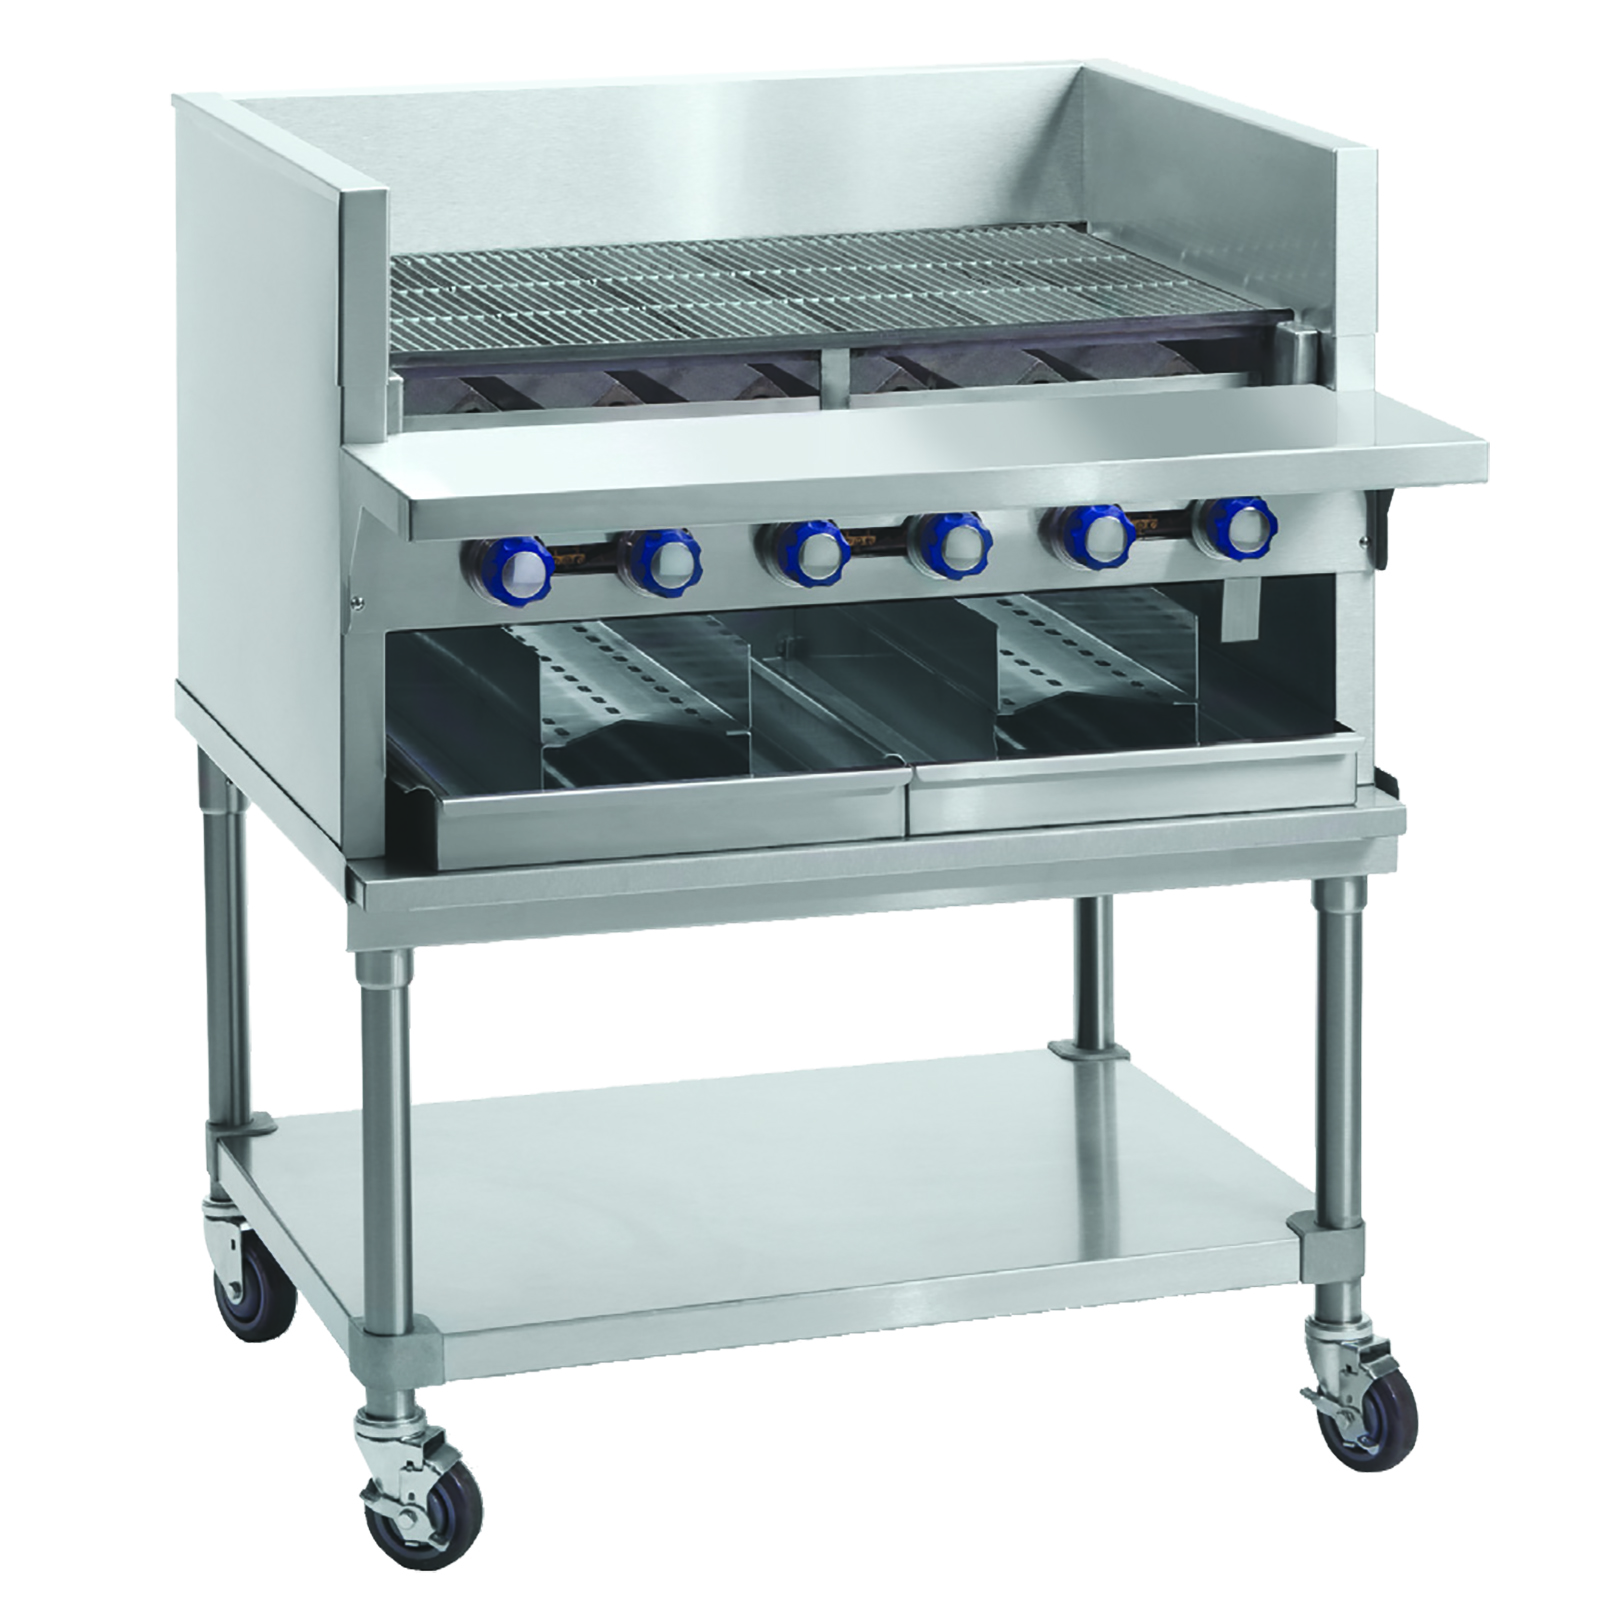 Imperial IABAT-36 equipment stand, for countertop cooking